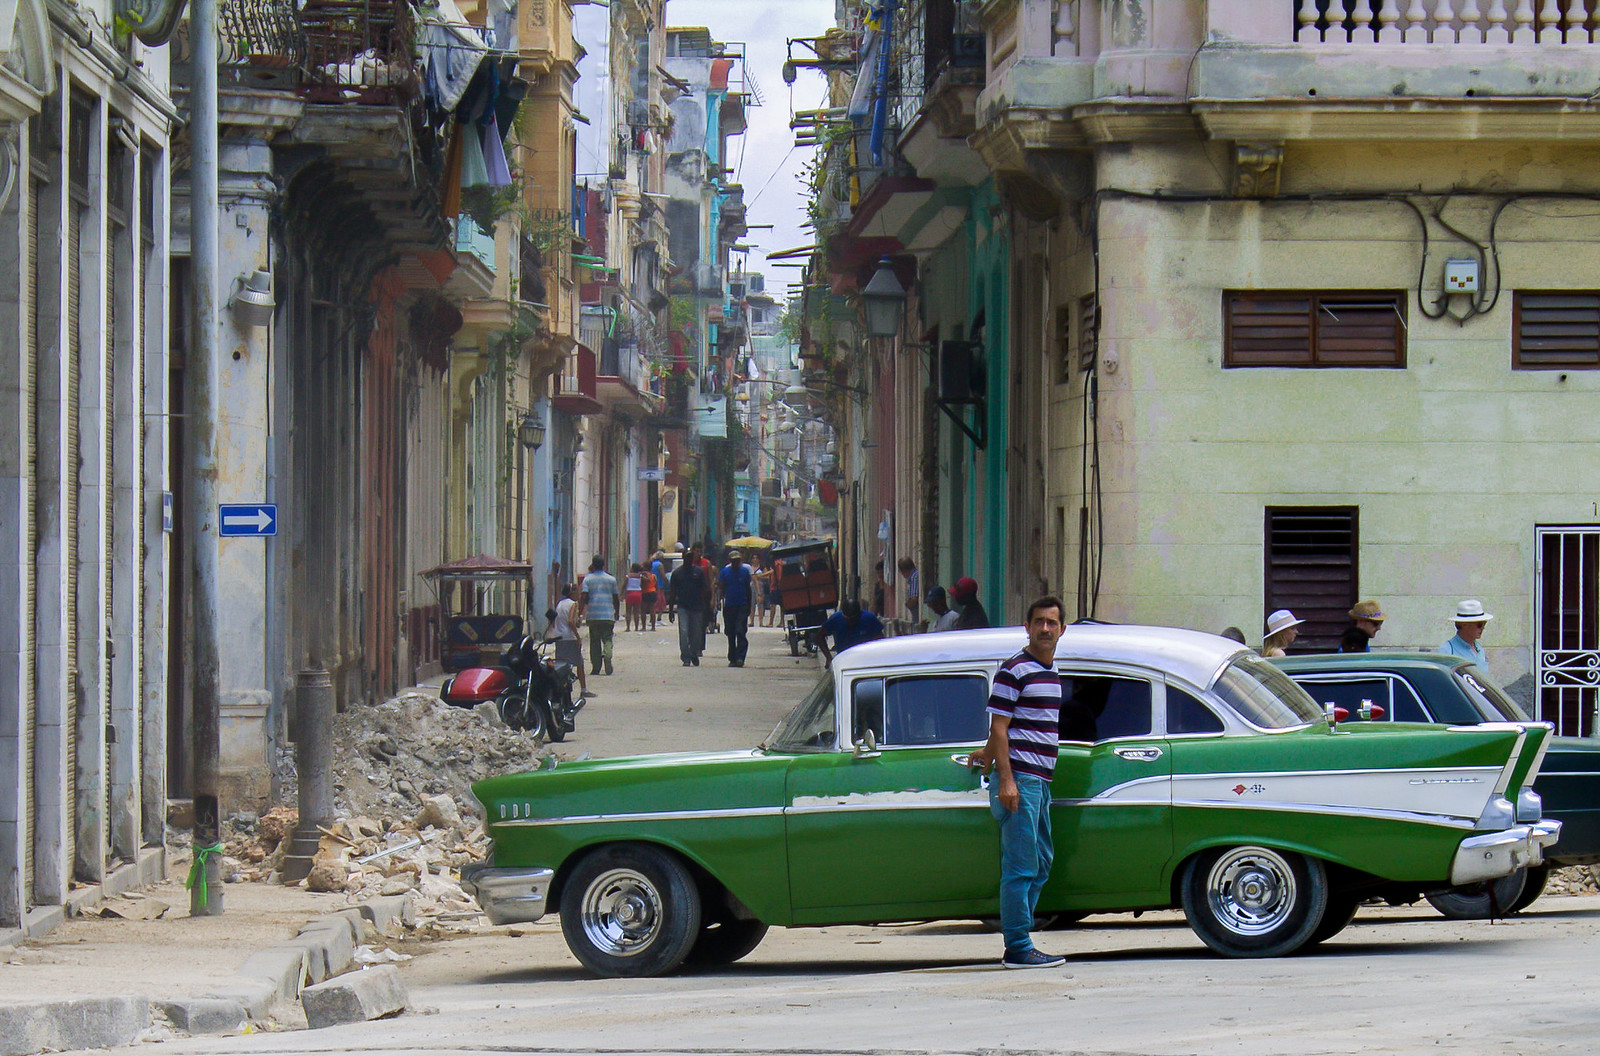 Things to do in Cuba - ride a 1950s convertible